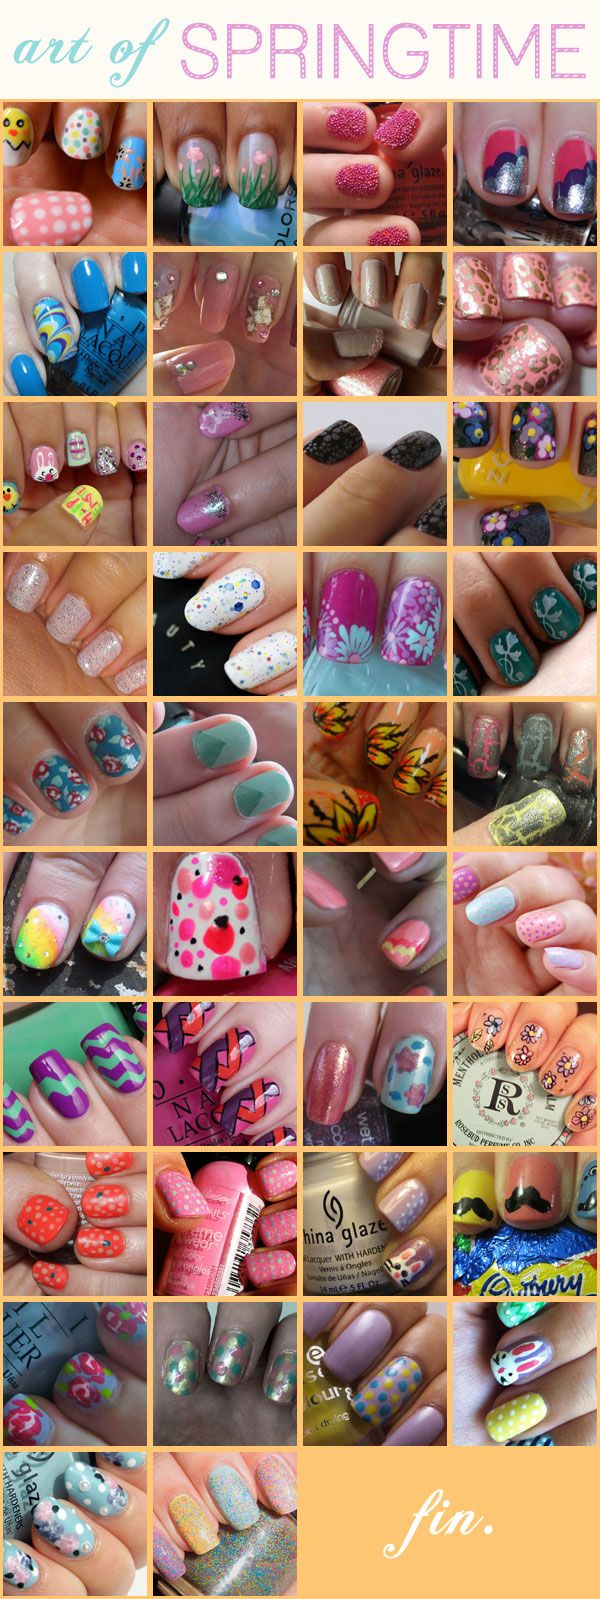 25 unique easter nail designs ideas on pinterest easter nails 25 unique easter nail designs ideas on pinterest easter nails bunny nails and diy easter nails prinsesfo Images